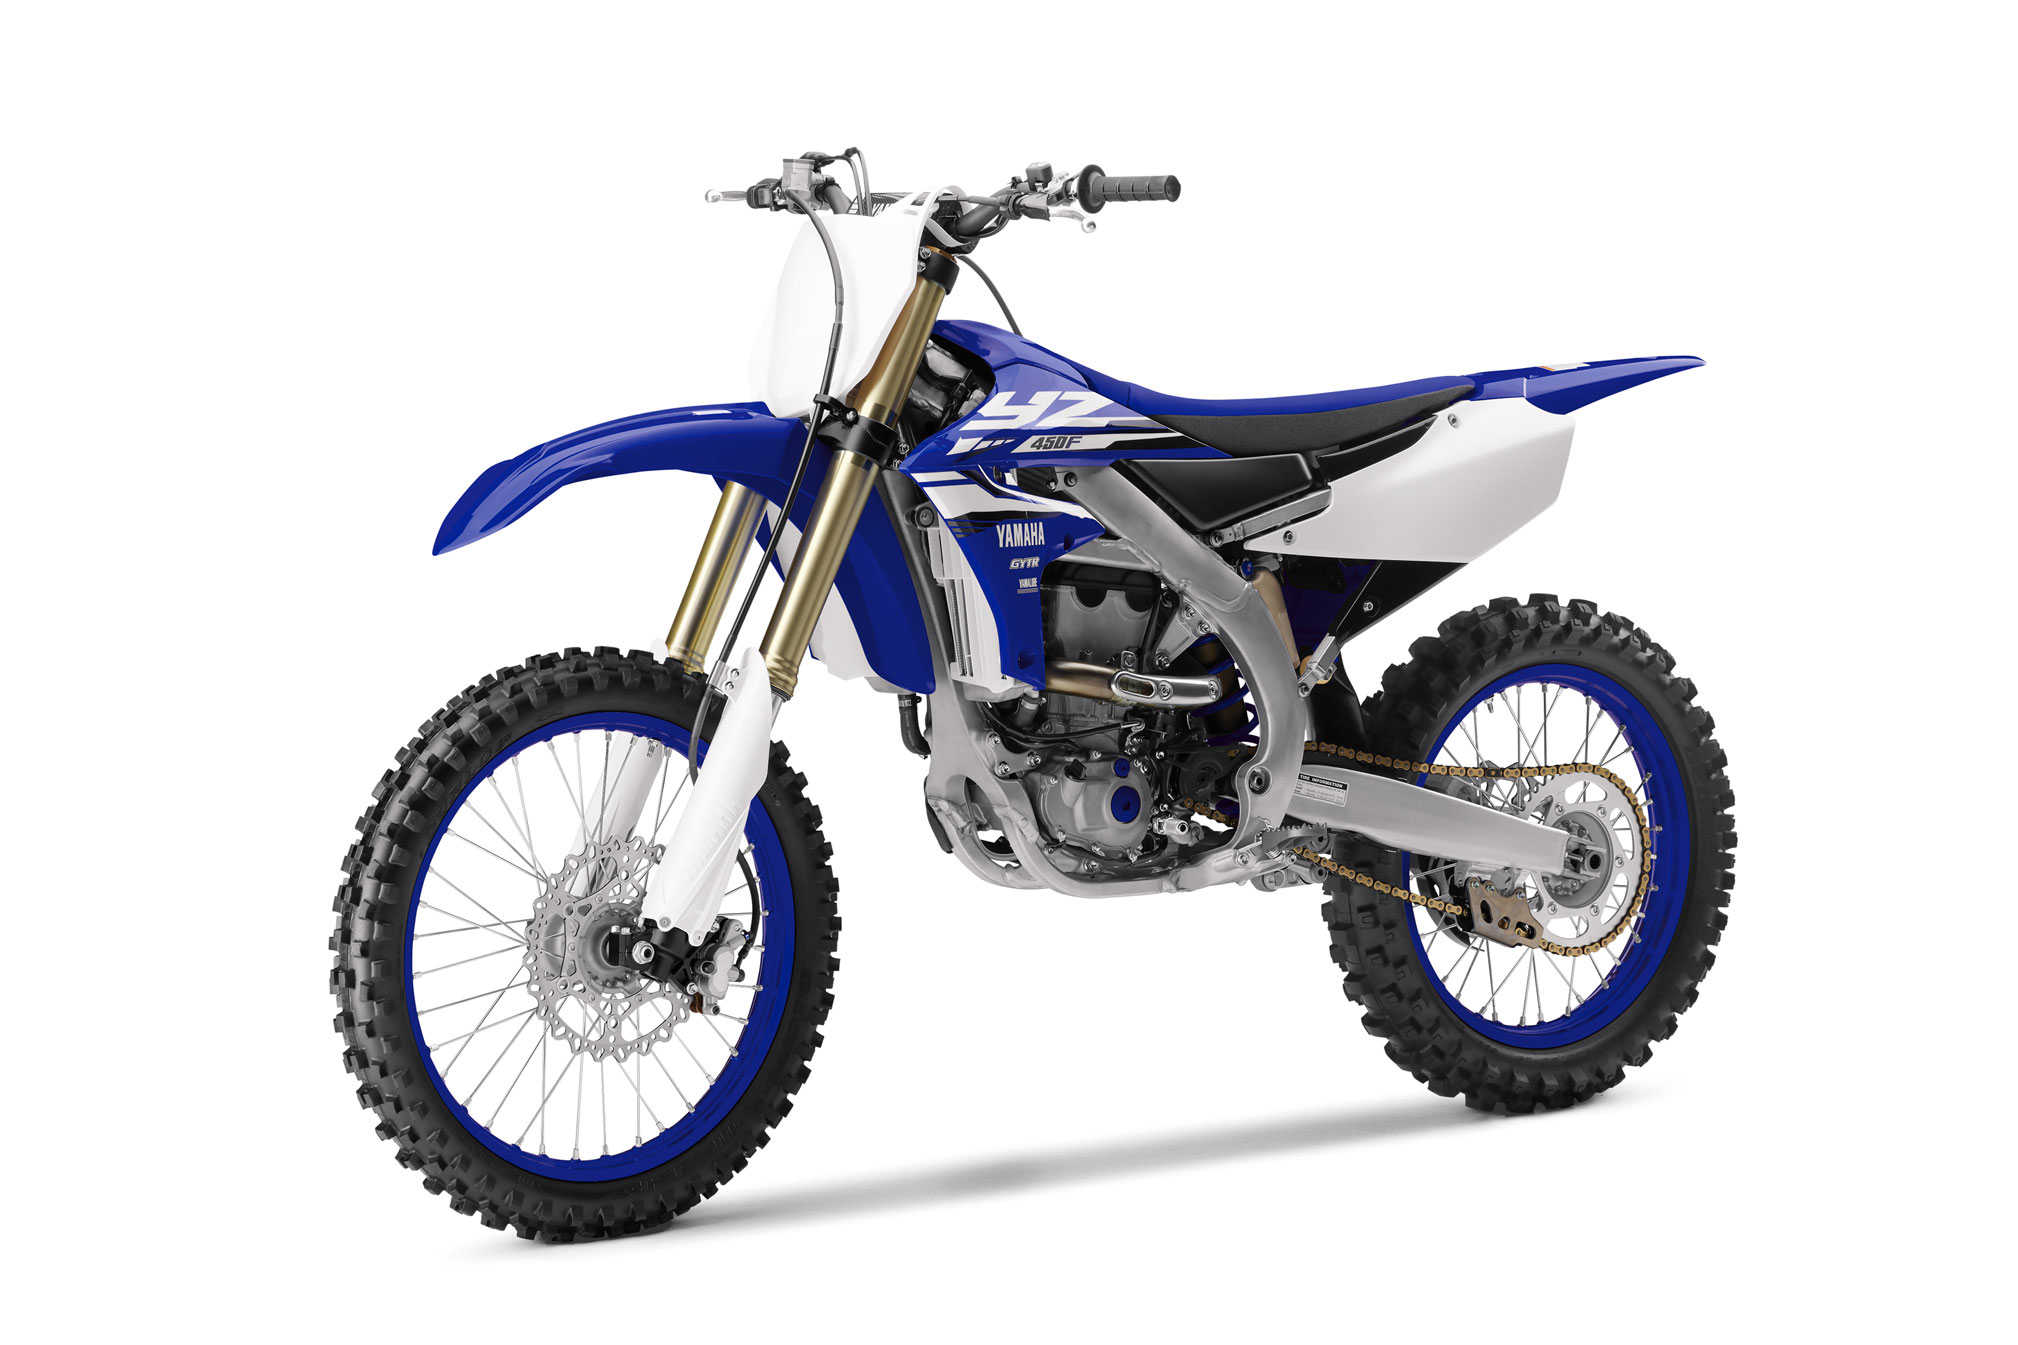 2018 yamaha yz450f review totalmotorcycle for Yamaha yz 450f